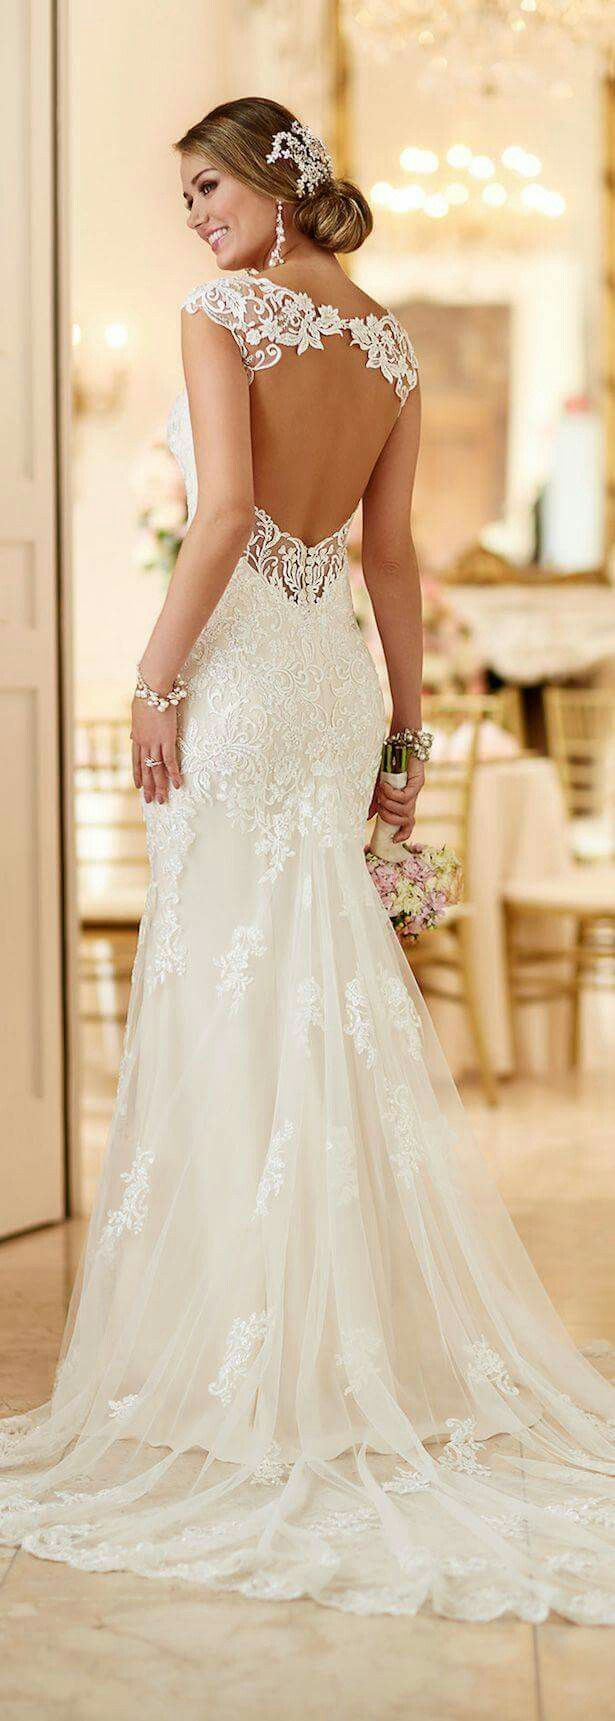 Pin by erin on wedding pinterest gowns weddings and wedding dress